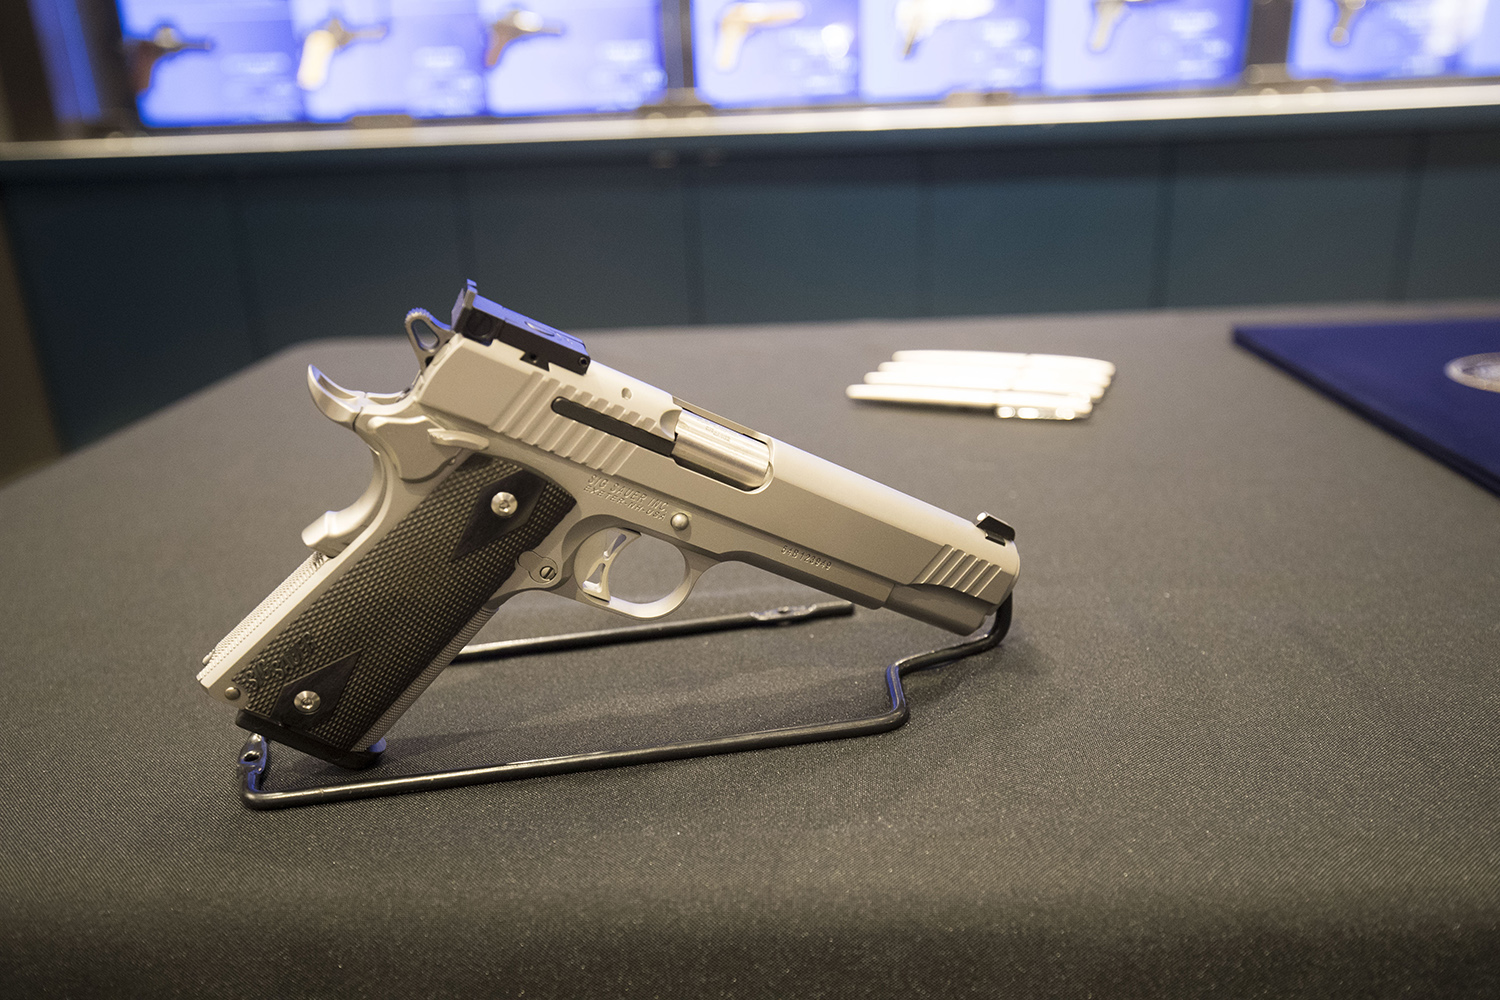 A Sig Sauer P320 9mm handgun, with Gov. Abbott's signing pens behind it, at a shooting range in Austin. The governor signed Senate Bill 6, which reduces the first-time fee for a license to carry handguns, at the range, on May 26, 2017.